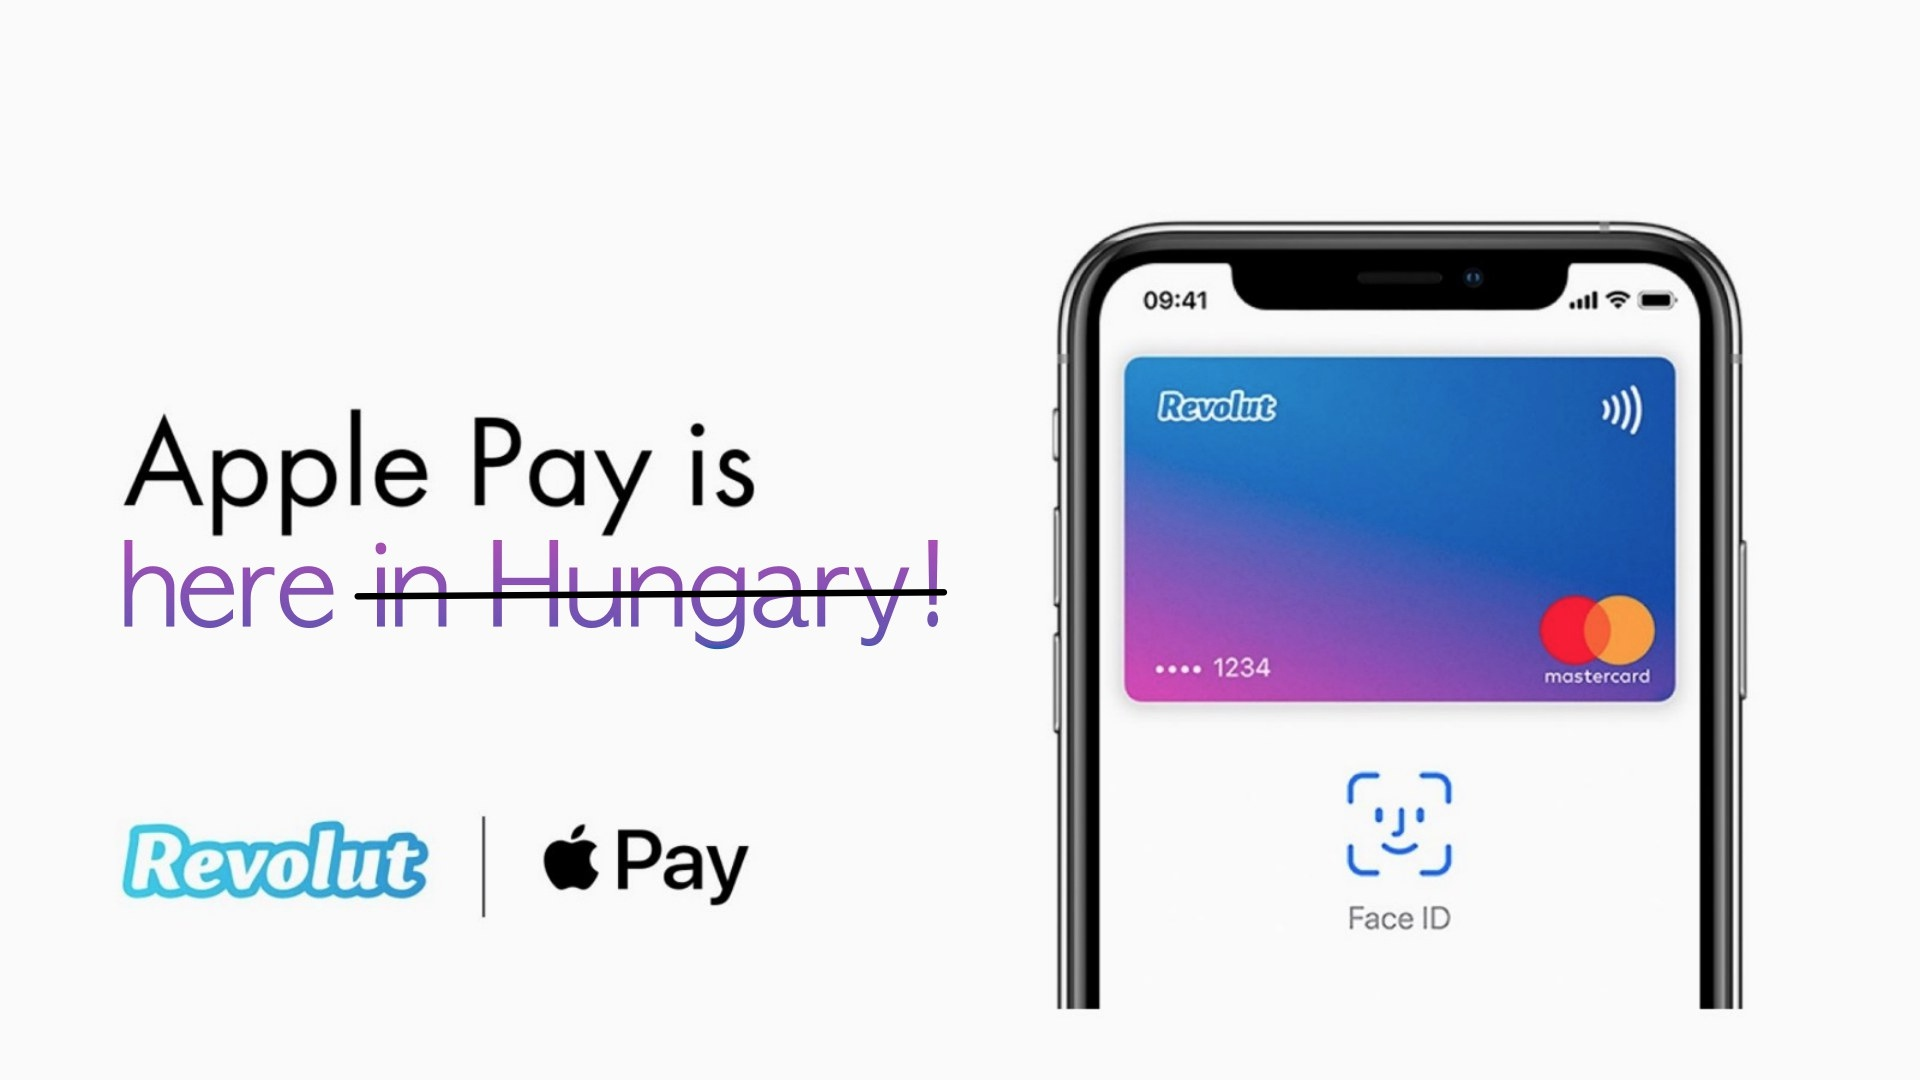 Revolut Apple Pay is not in Hungary